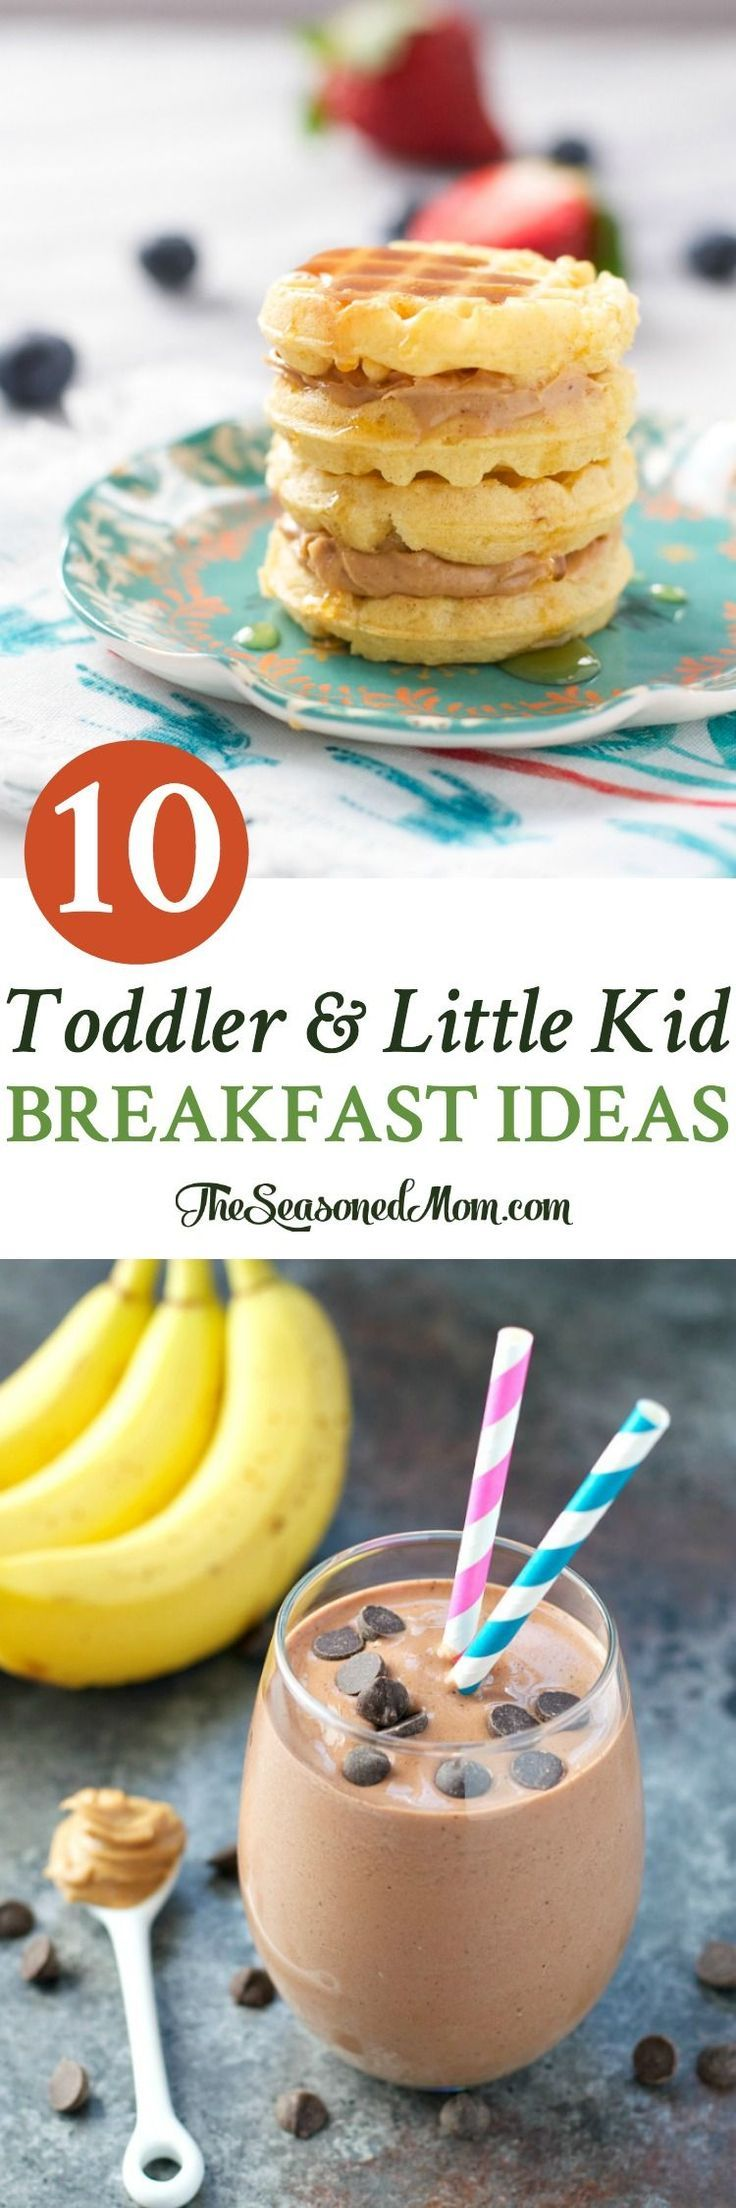 10 Toddler and Little Kid Breakfast Ideas is part of food-recipes - Are you looking for some new options to spice up your kids' breakfast routine  Try these 10 Toddler and Little Kid Breakfast Ideas!